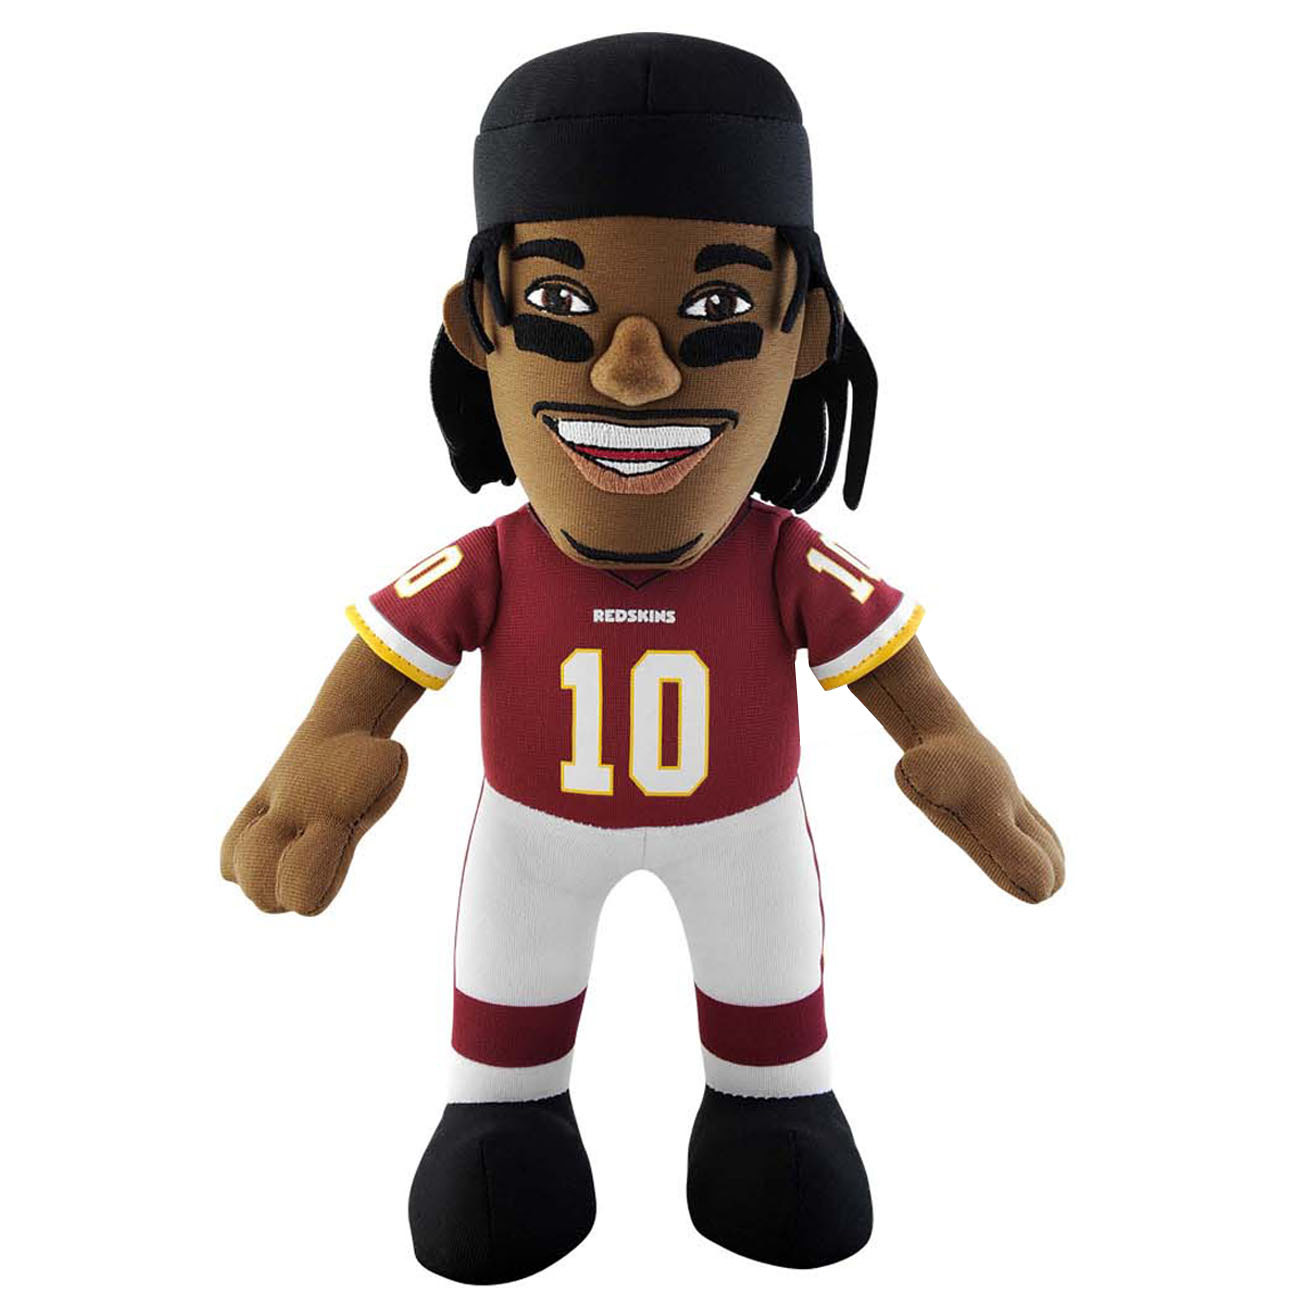 Washington Redskins Bleacher Creature Plush - Robert Griffin III